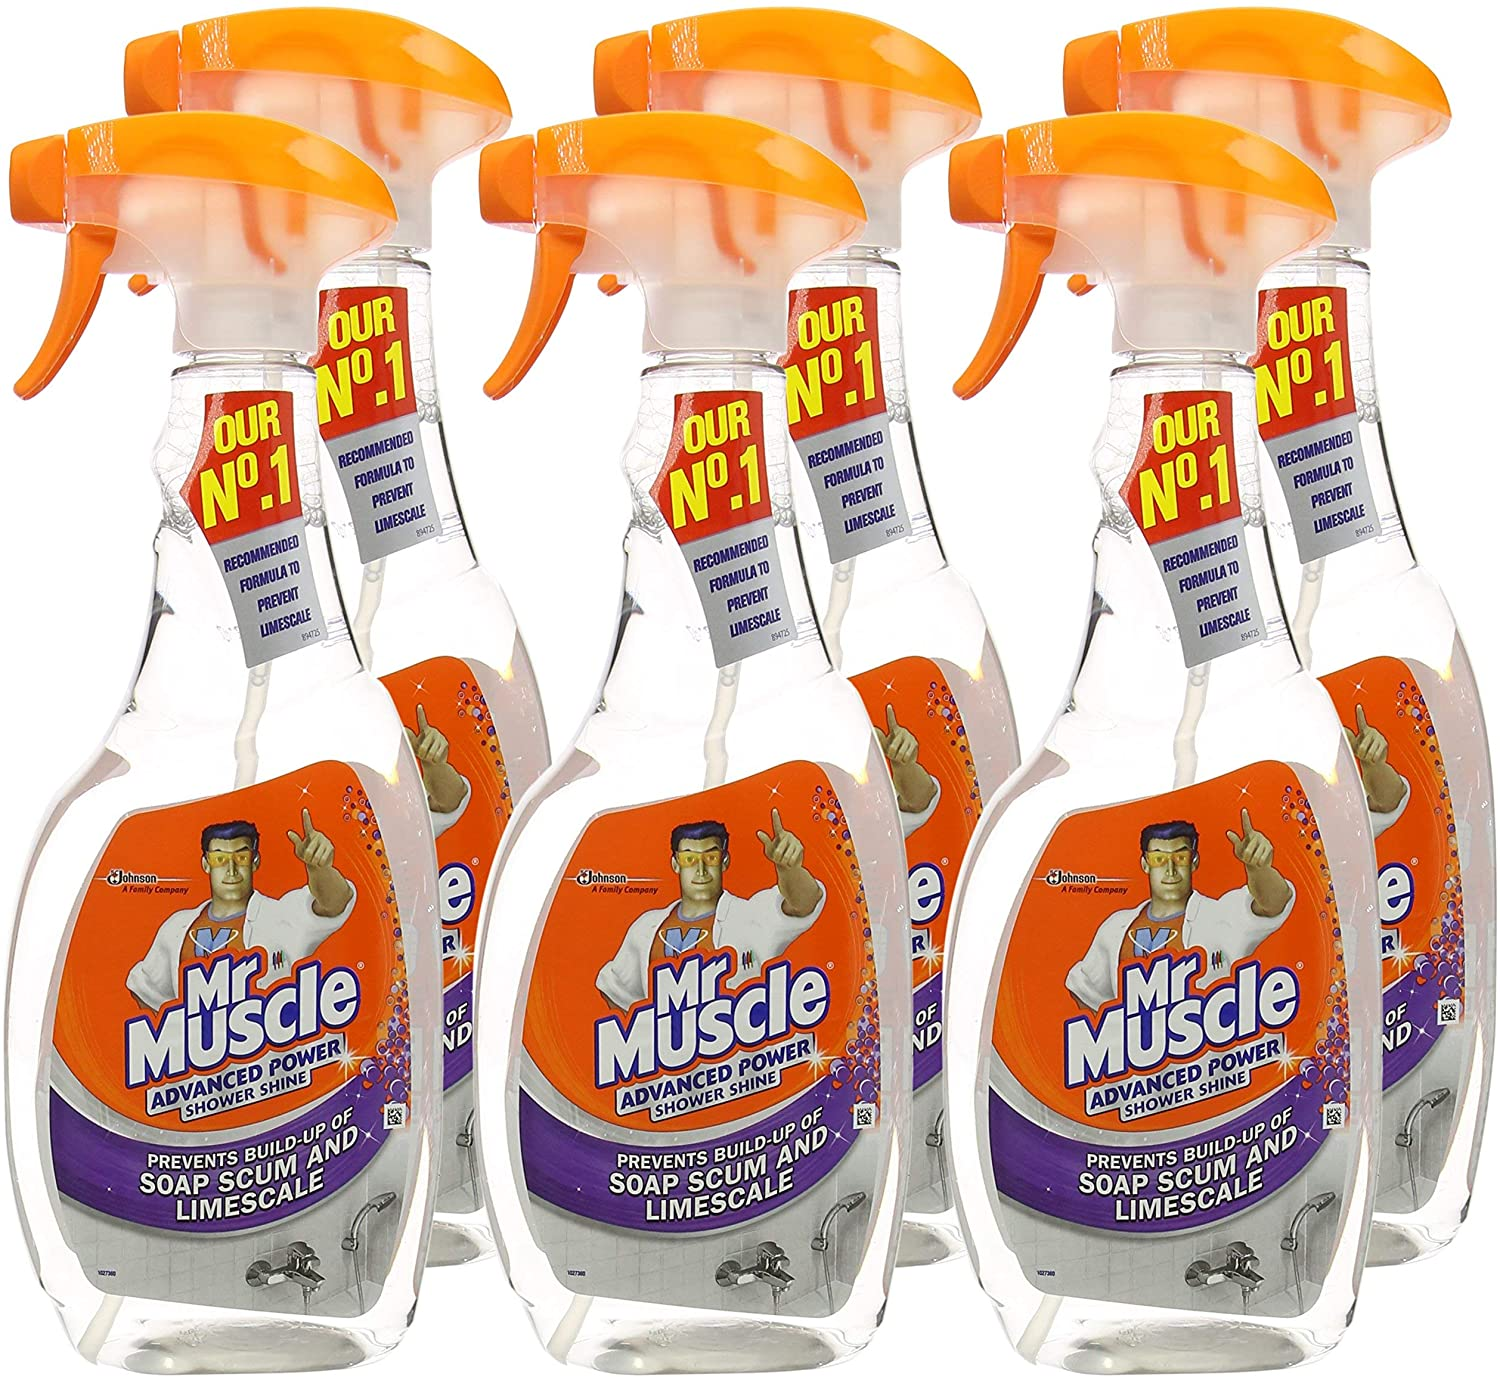 Mr Muscle Advanced Power Shower Shine Spray